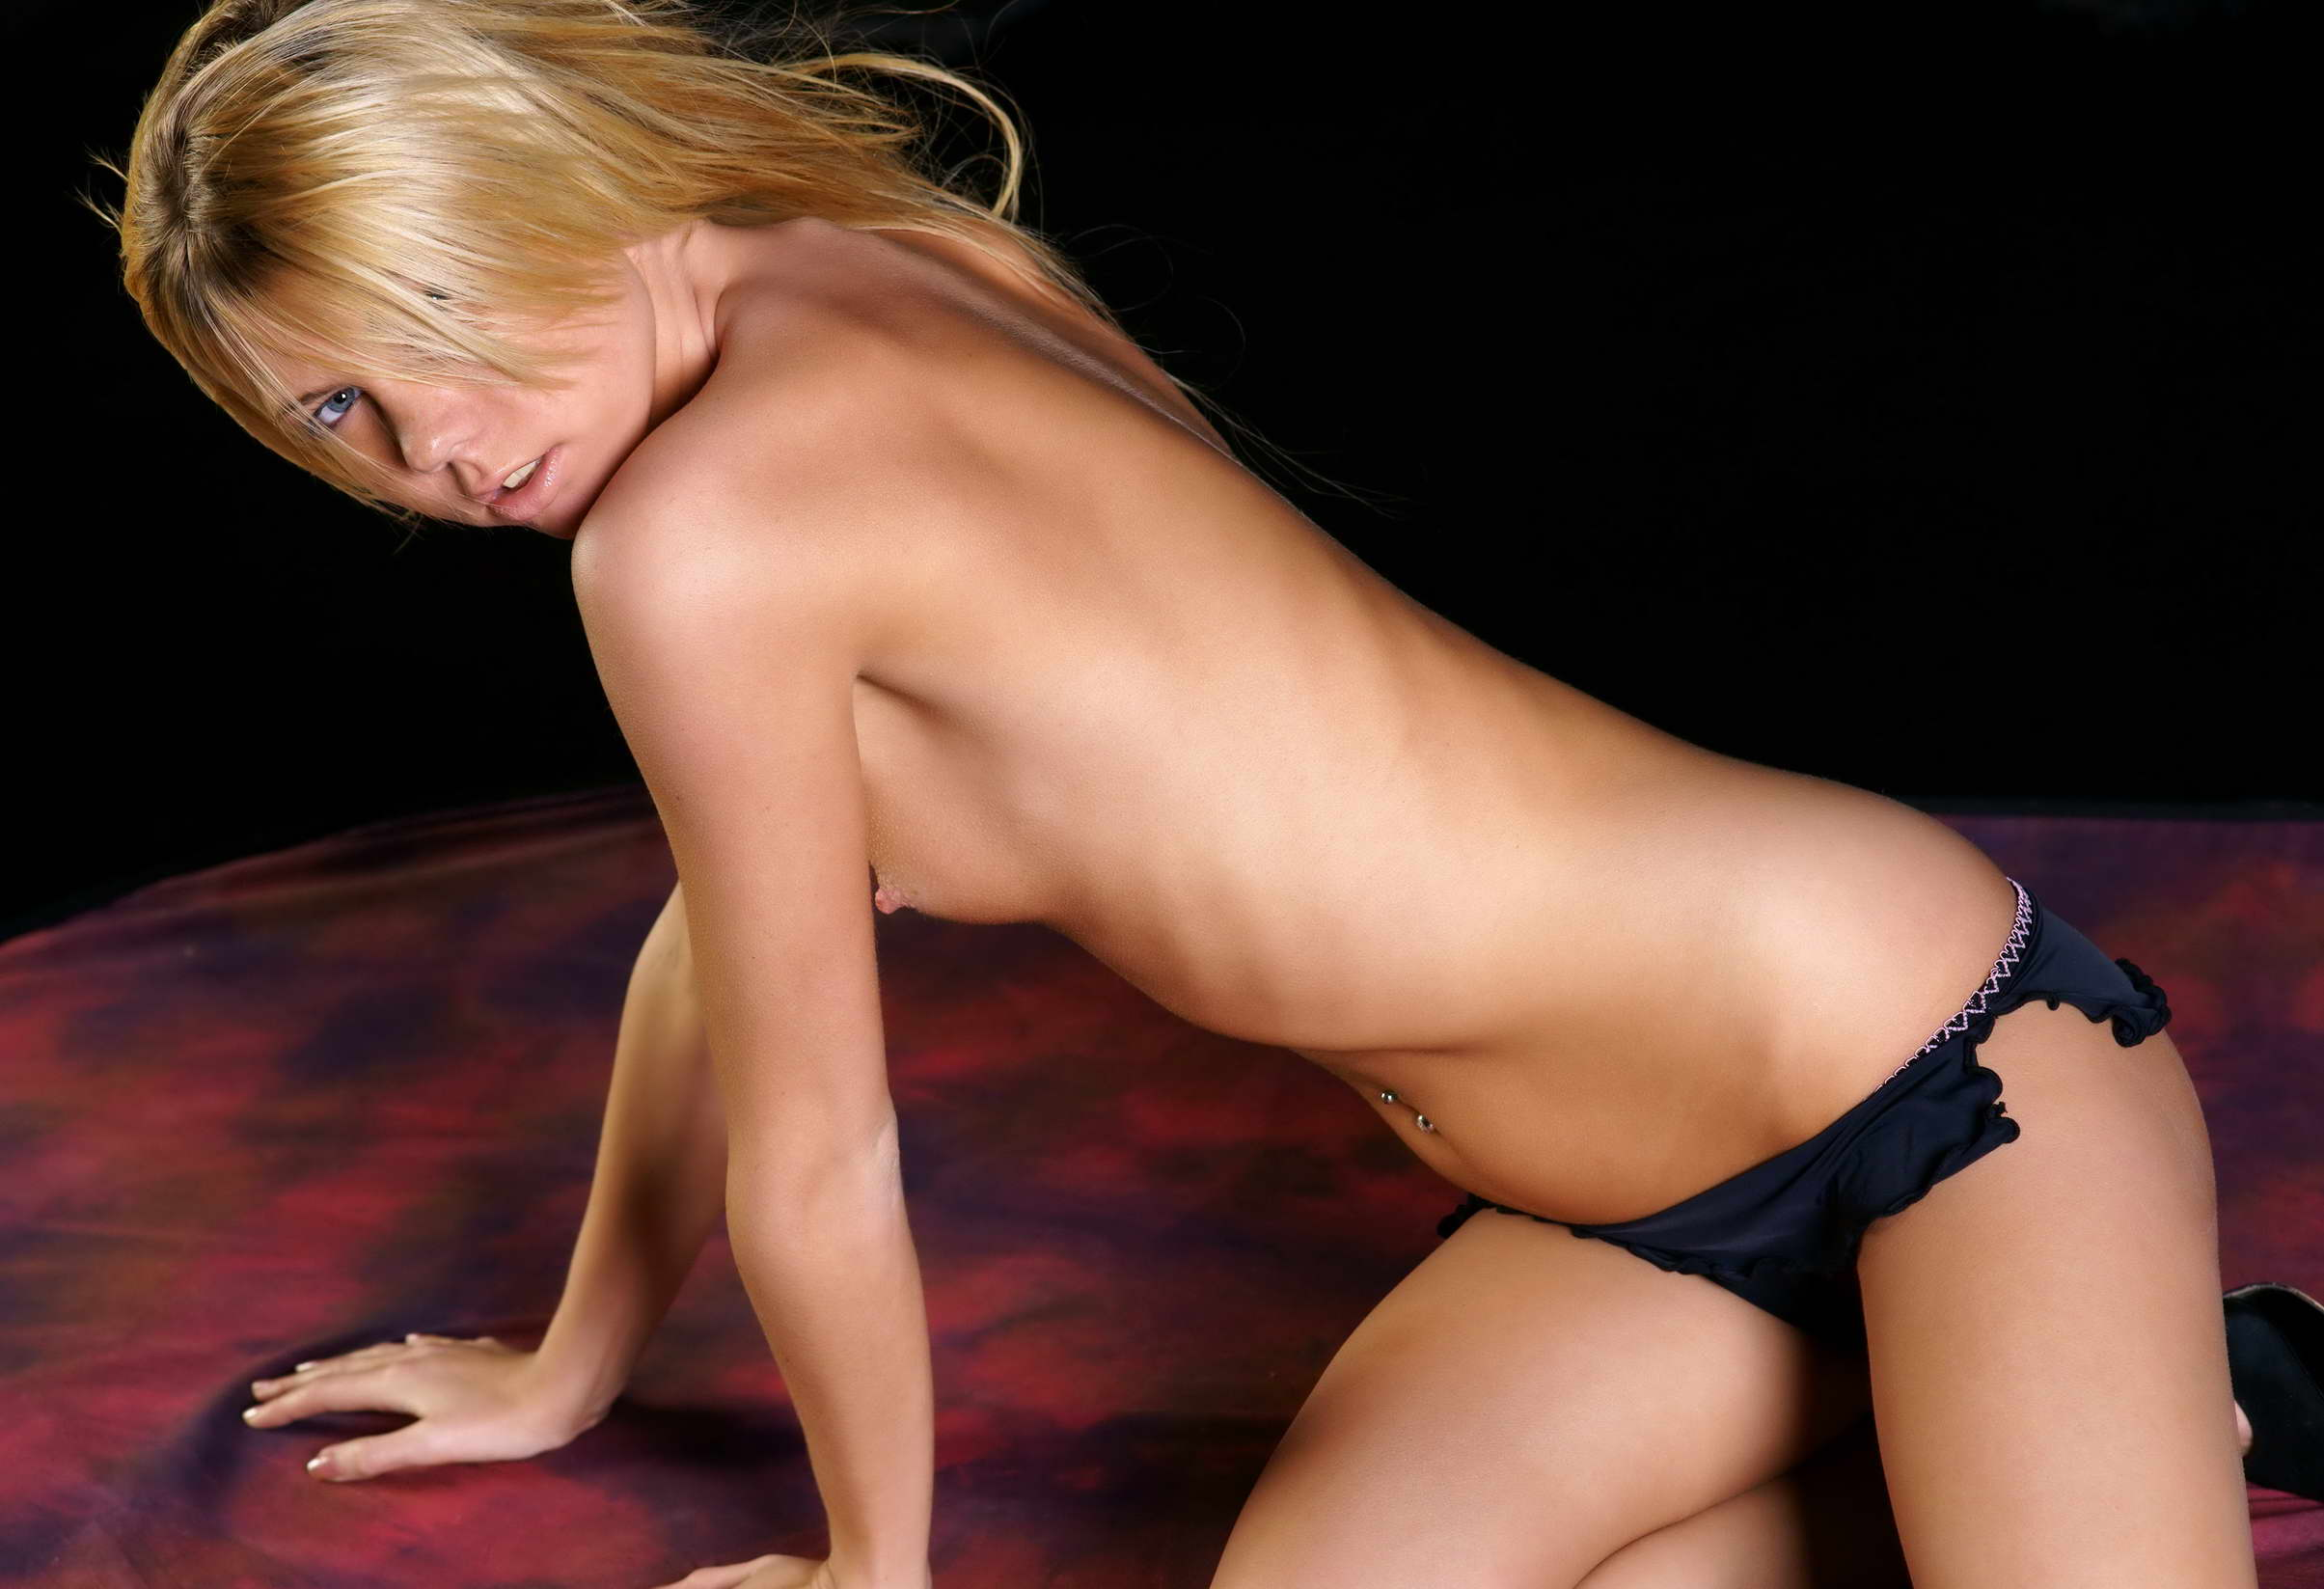 Incredible London escorts are lovely and hot